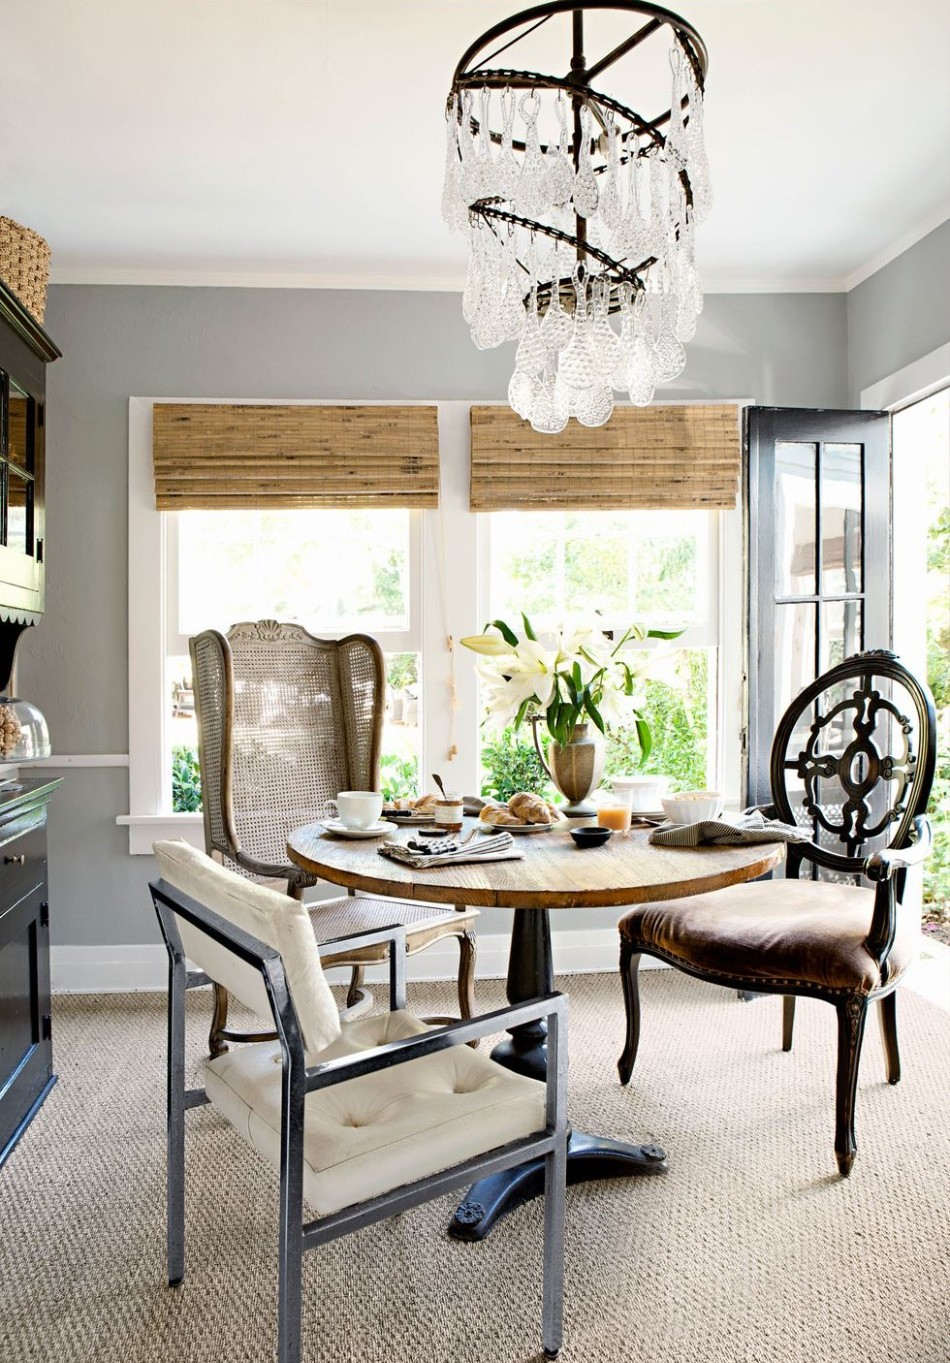 10 Different Ways to Make A Statement in Your Dining Area | www.bocadolo.com #diningroom #diningarea #statementpieces #interiordesign #exclusivedesign #moderndiningtables @moderndiningtables